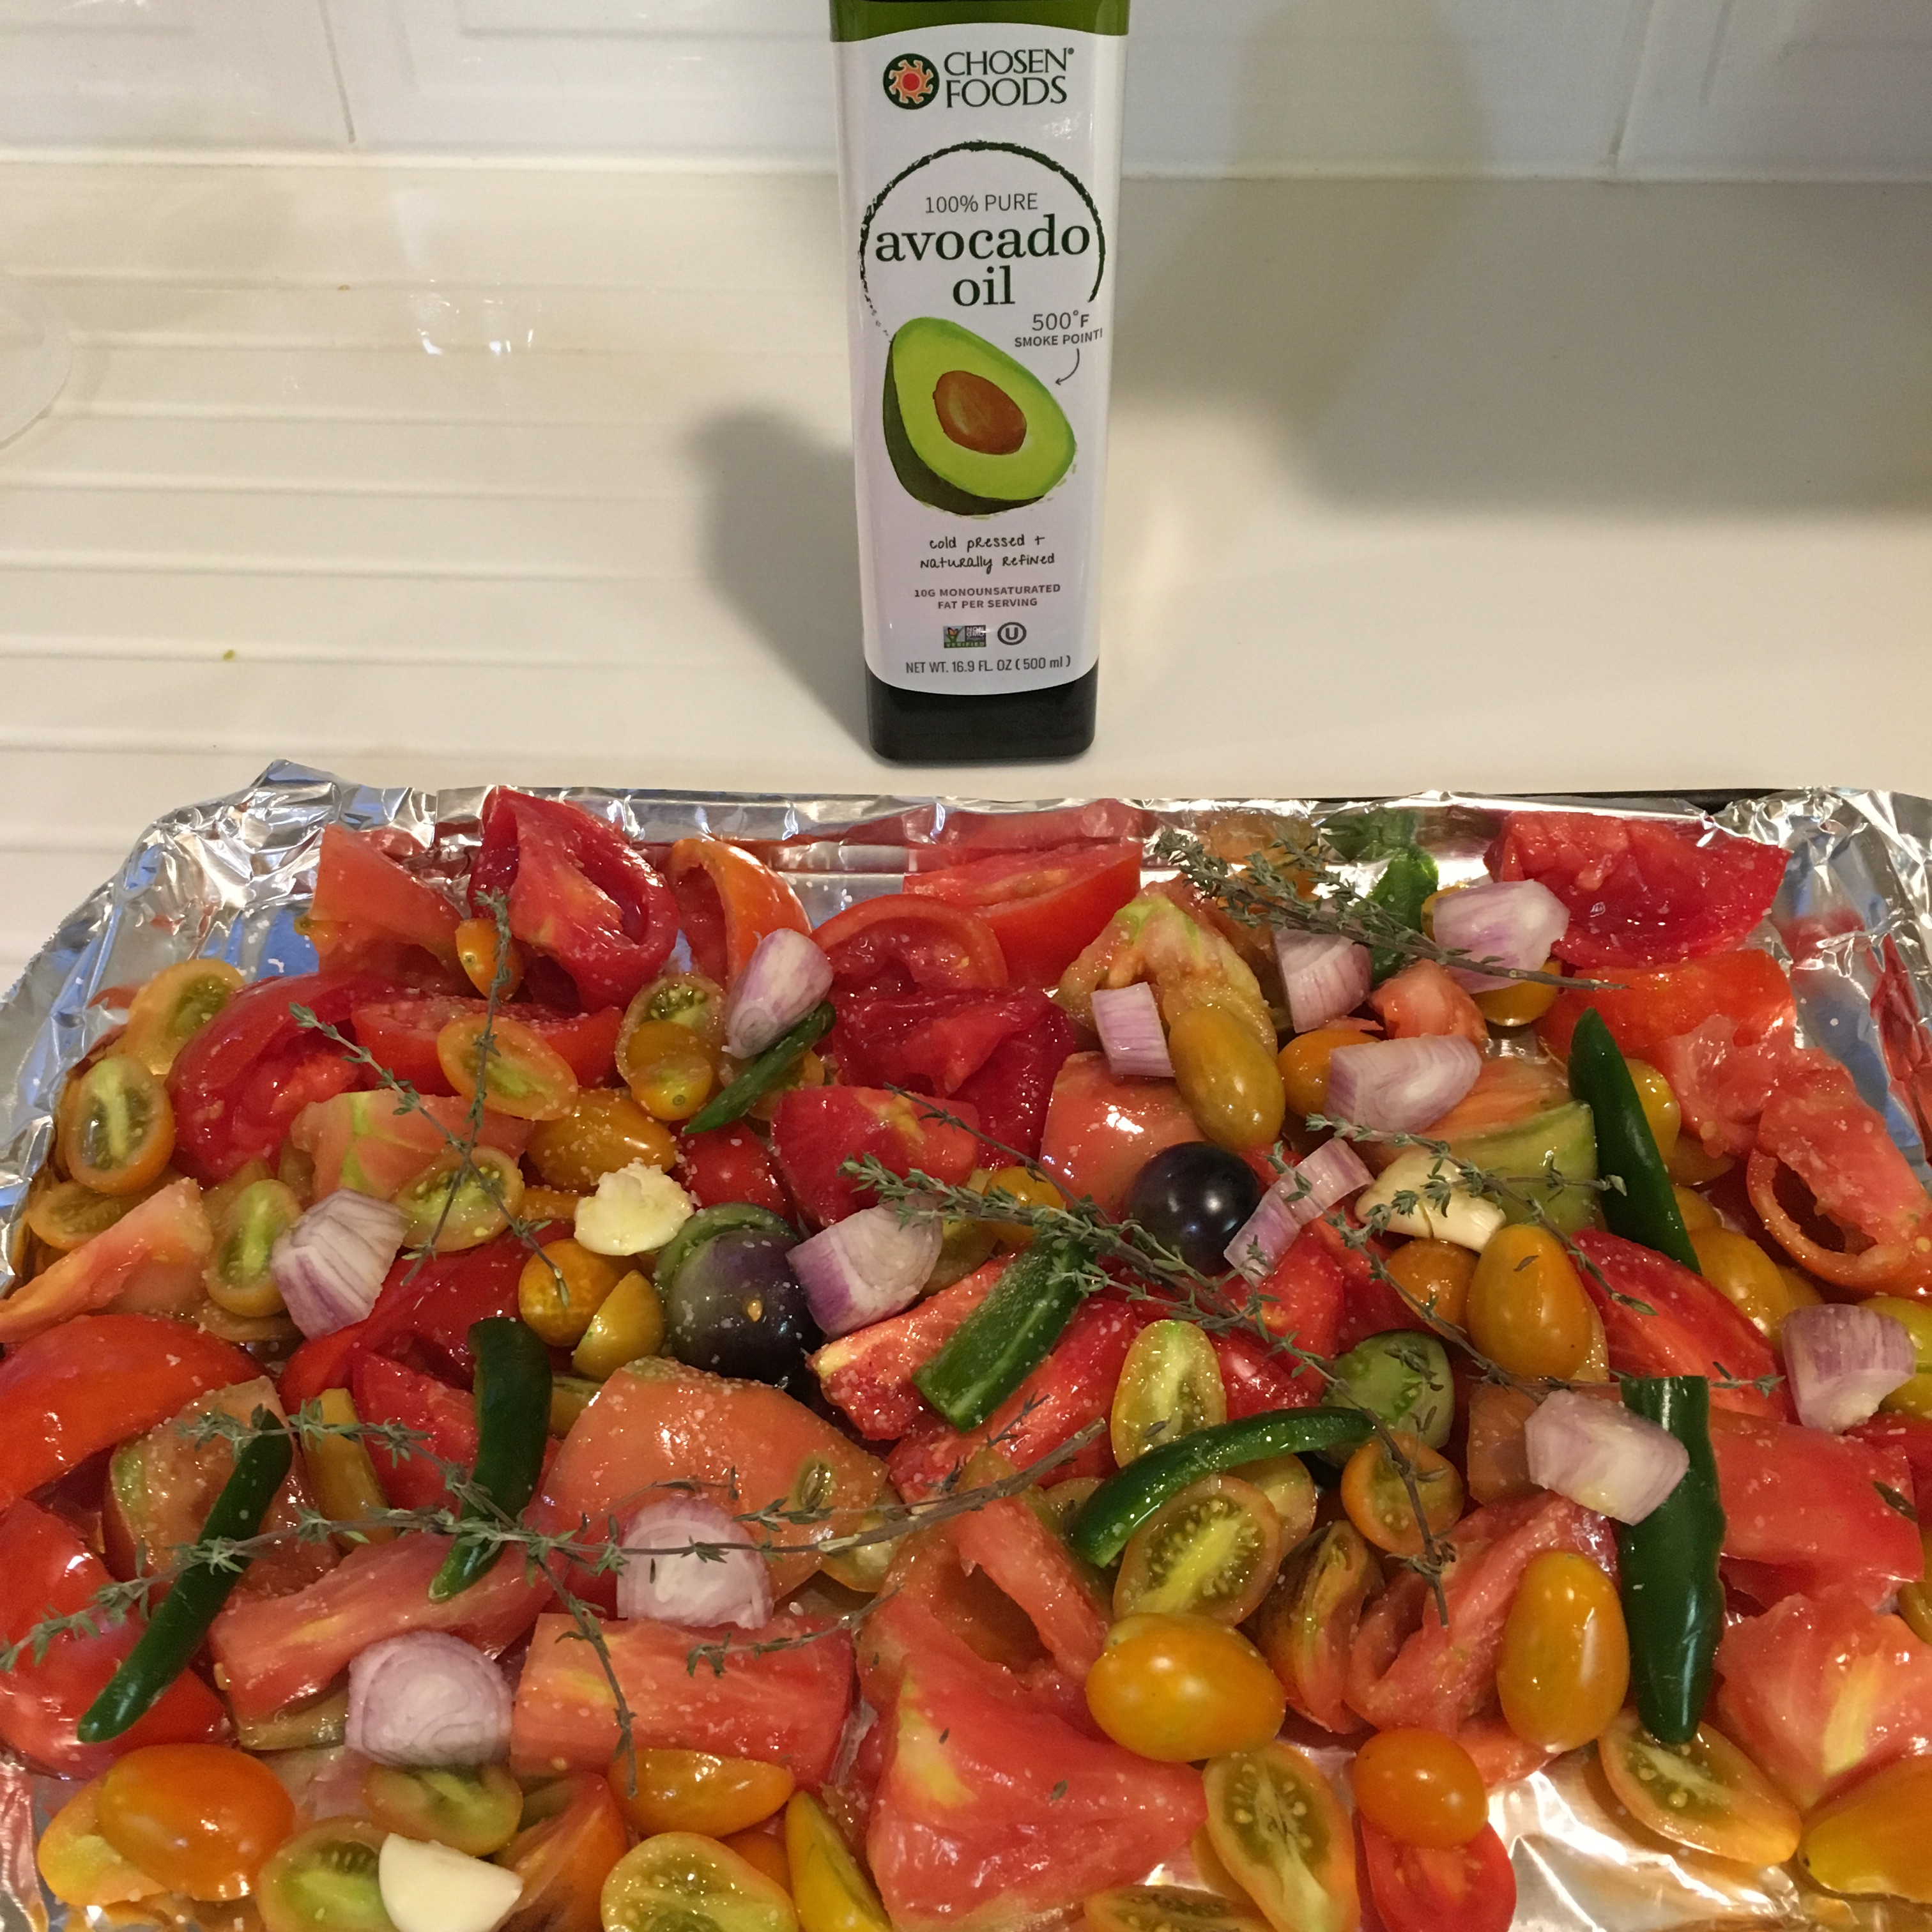 roasted vegetables and avocado oil bottle